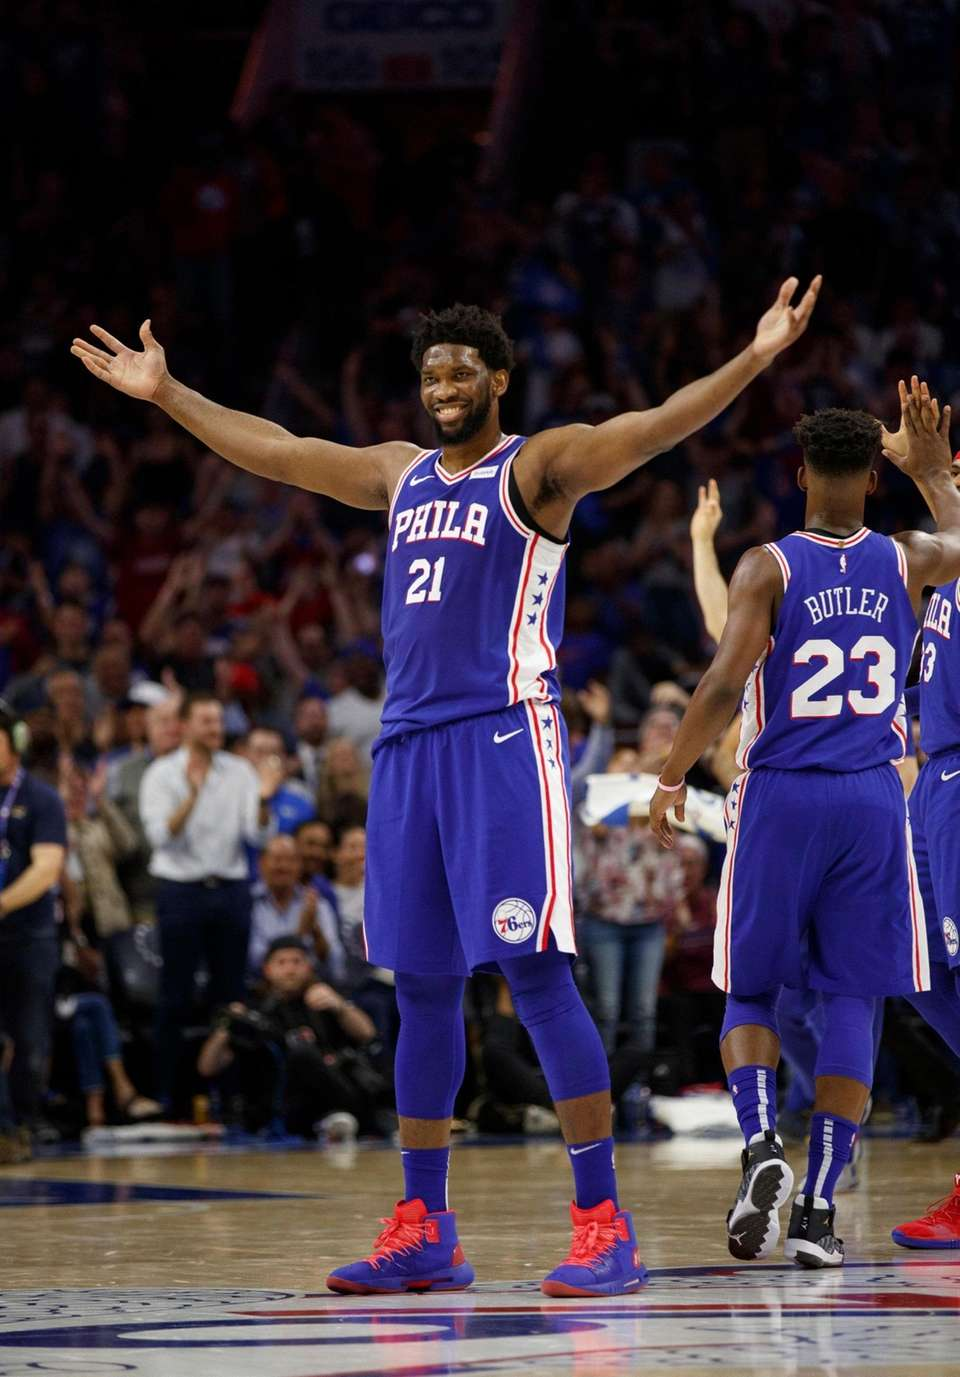 The 76ers' Joel Embiid reacts to his basket